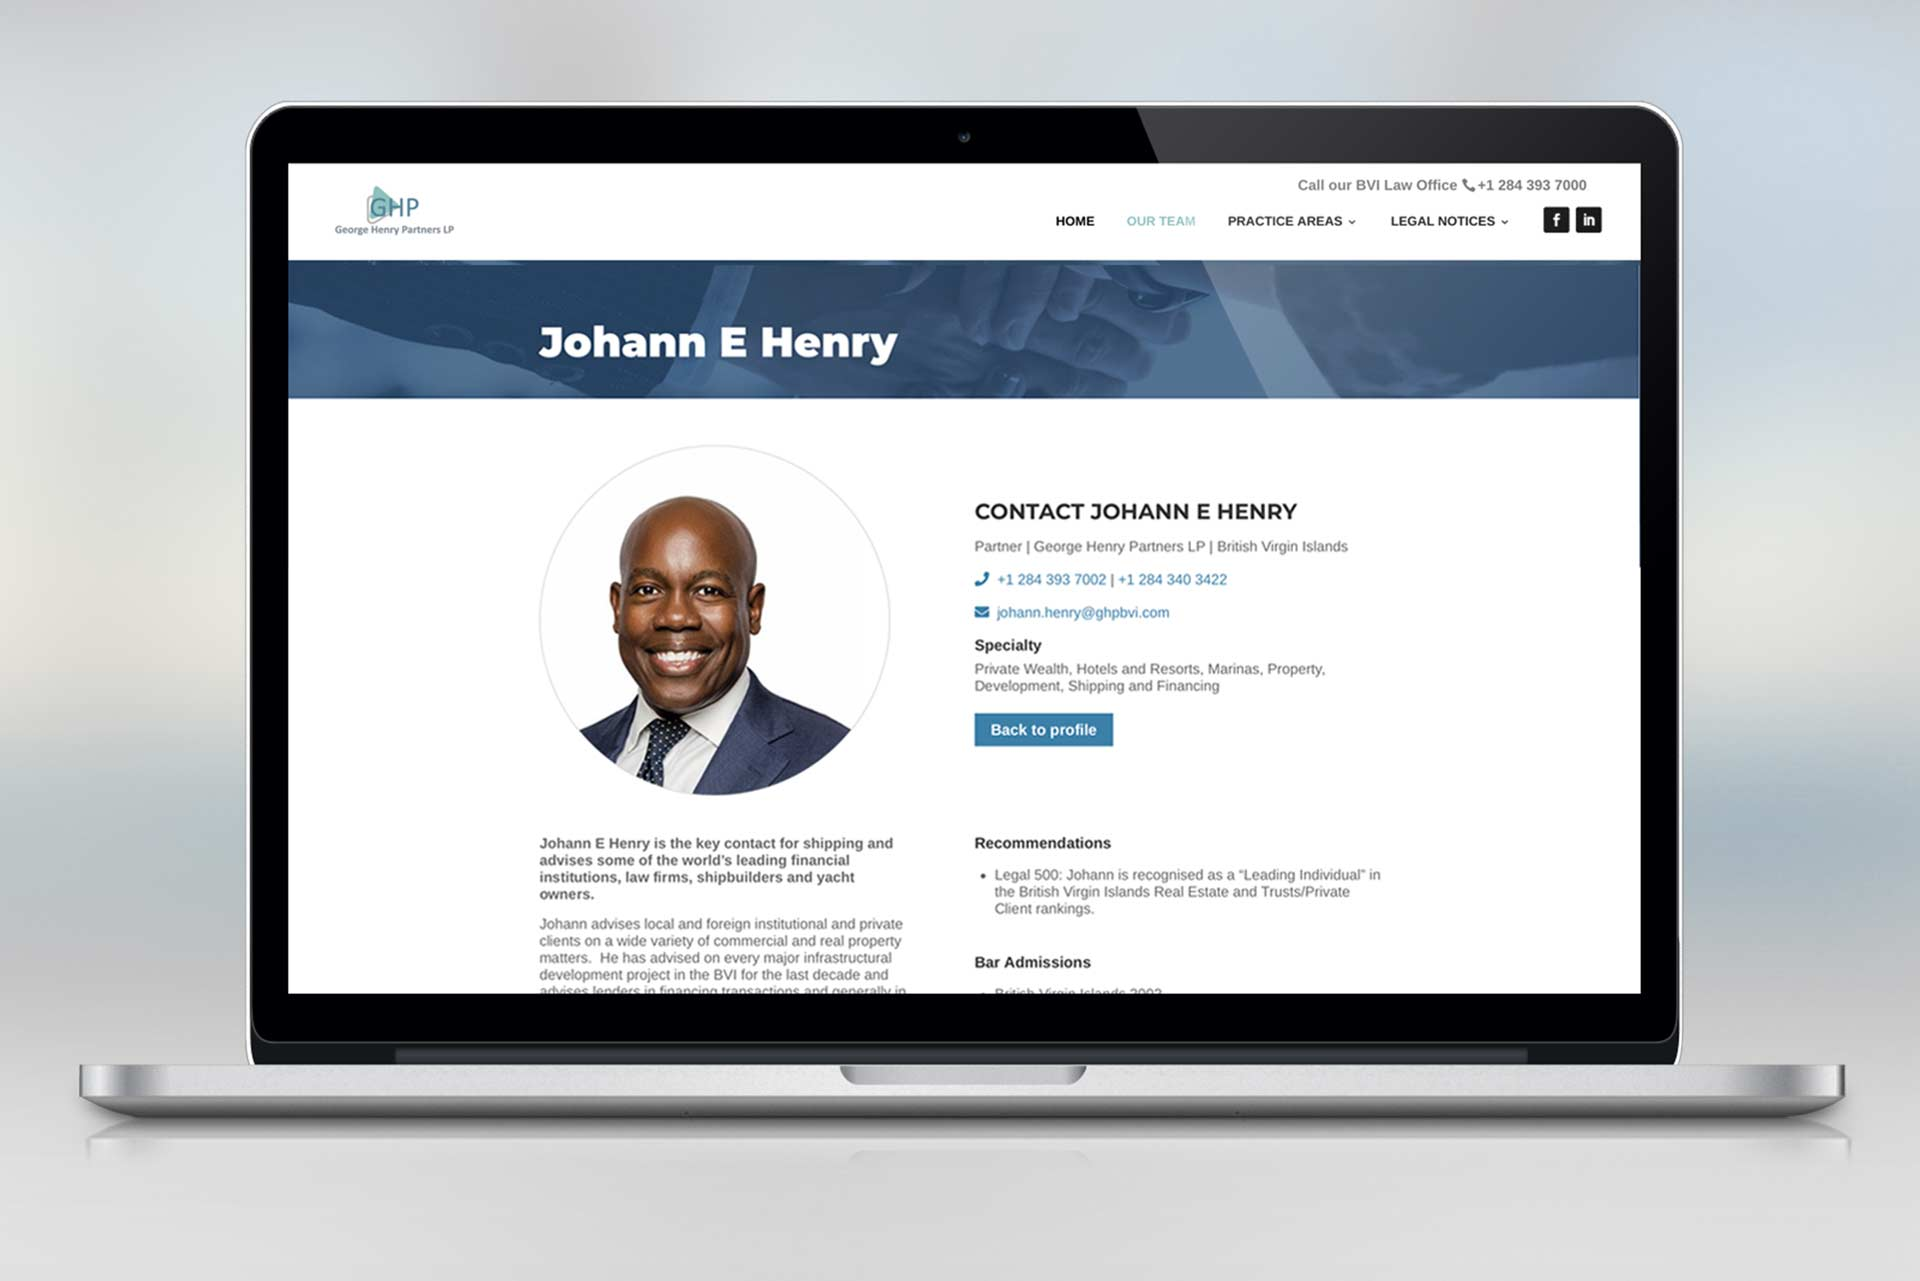 A mockup screen of a law website design, containing a profile page for a BVI lawyer.